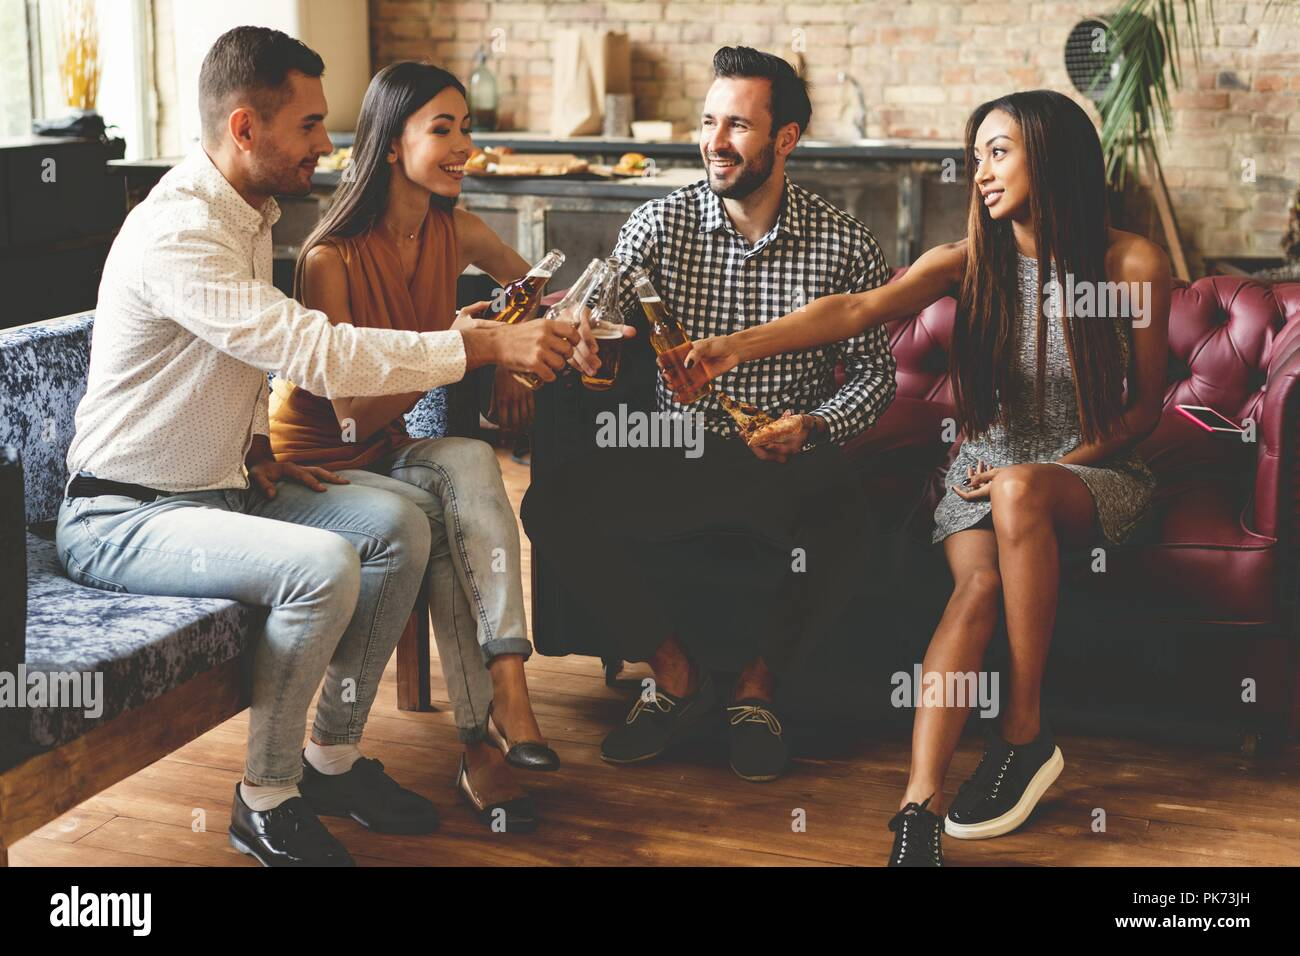 Spending great time with best friends. Group of cheerful young people enjoying food and drinks while spending nice time in cofortable chairs on the kitchen together. - Stock Image